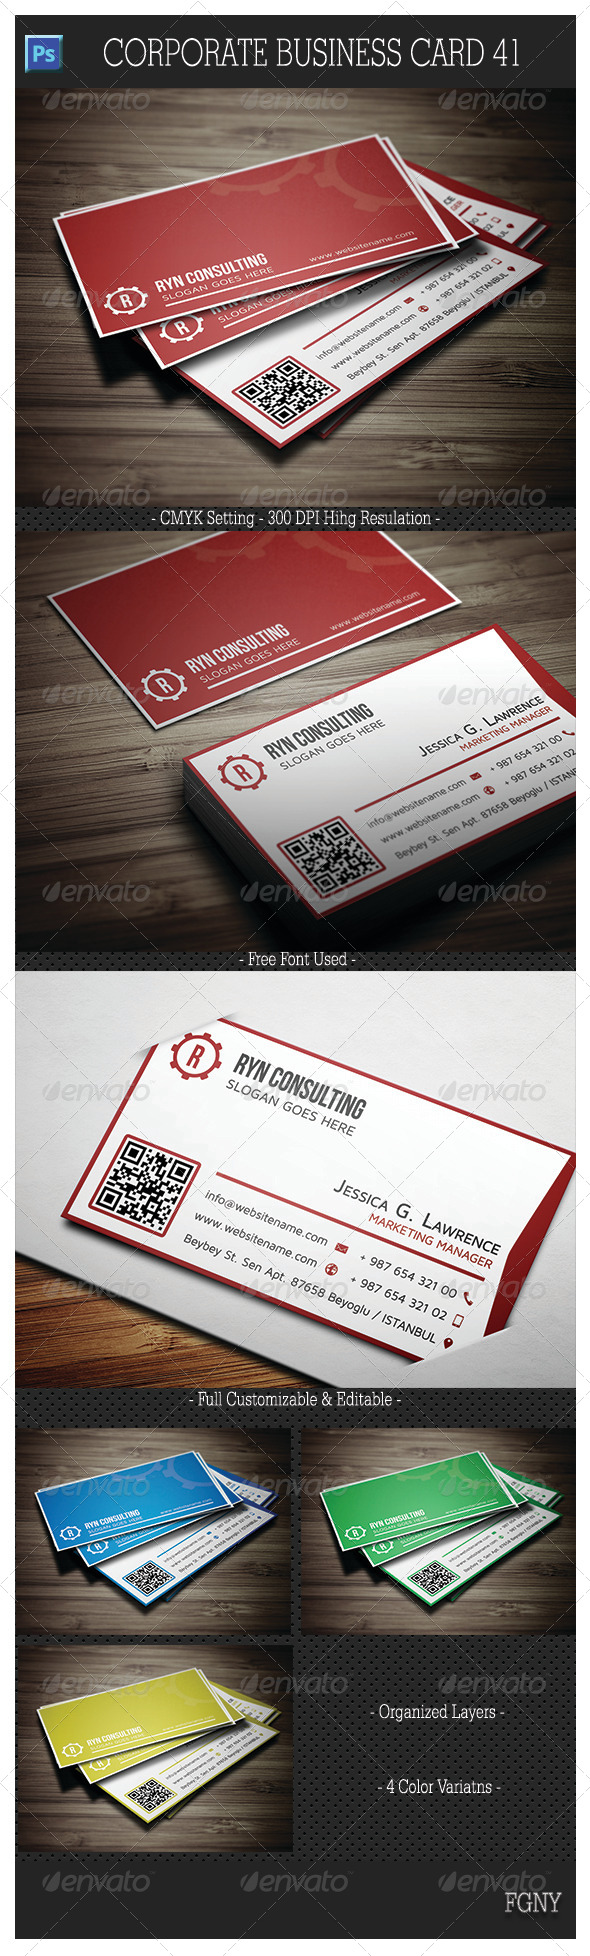 GraphicRiver Corporate Business Card 41 6186975